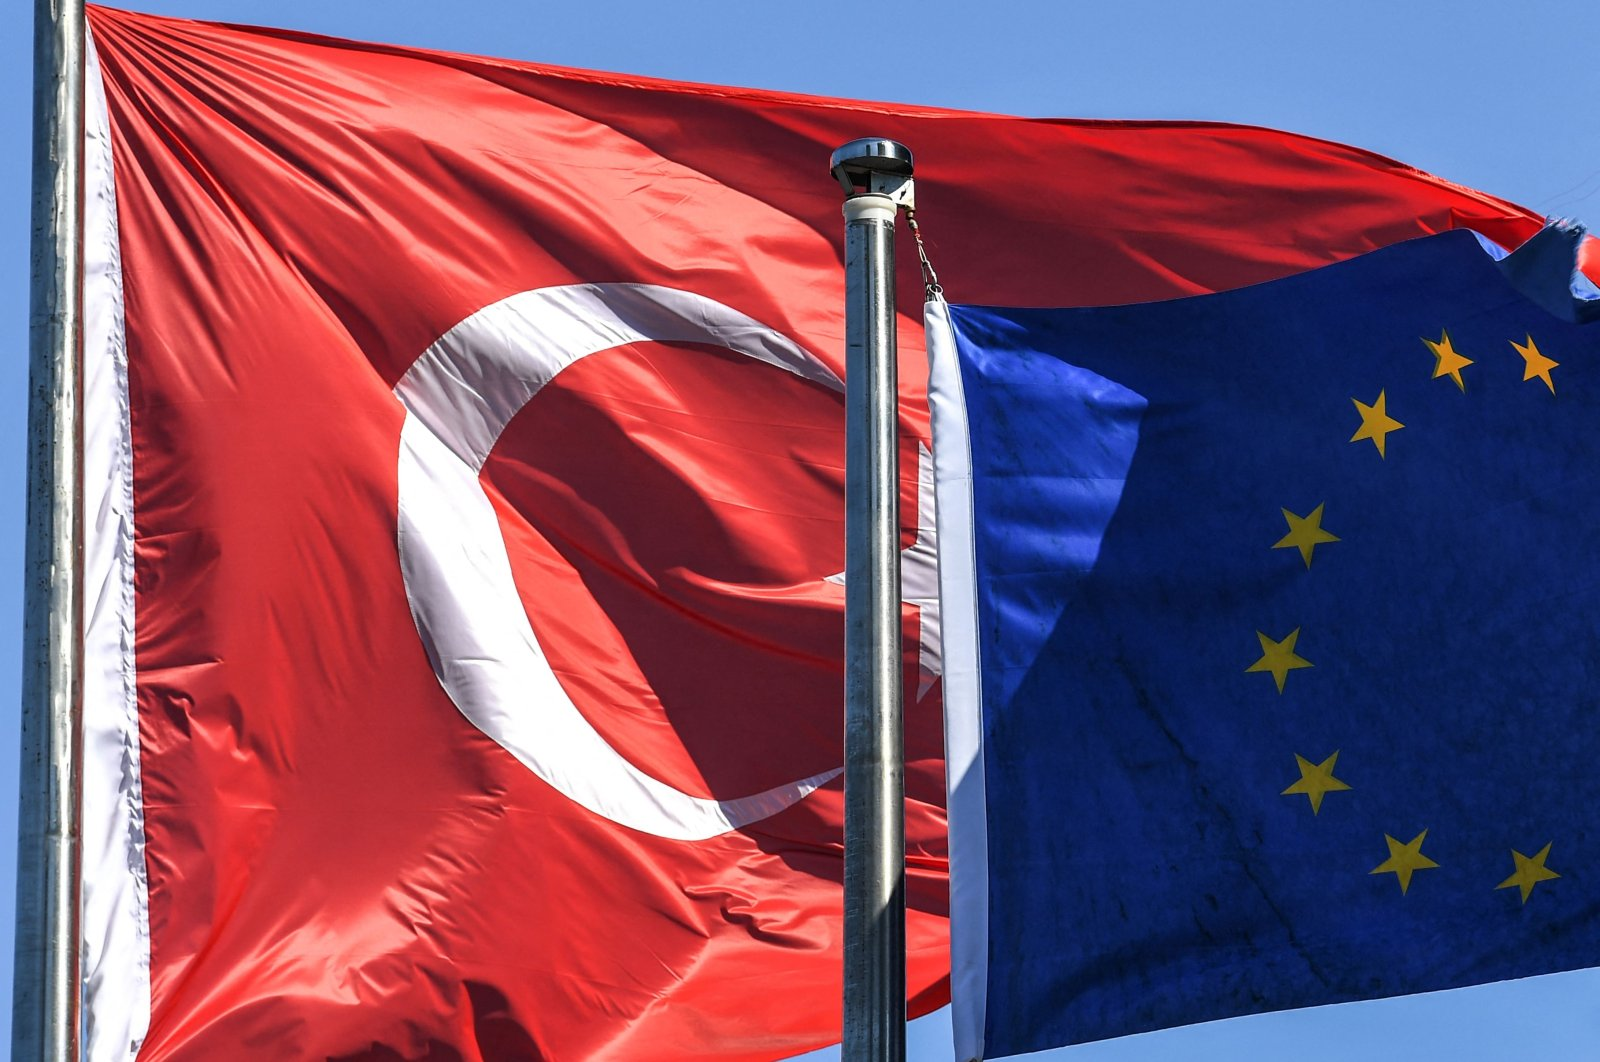 The Turkish flag and European Union flag flutter in the wind in the Maslak financial and business district in Istanbul, Turkey, Aug. 15, 2018. (AFP Photo)